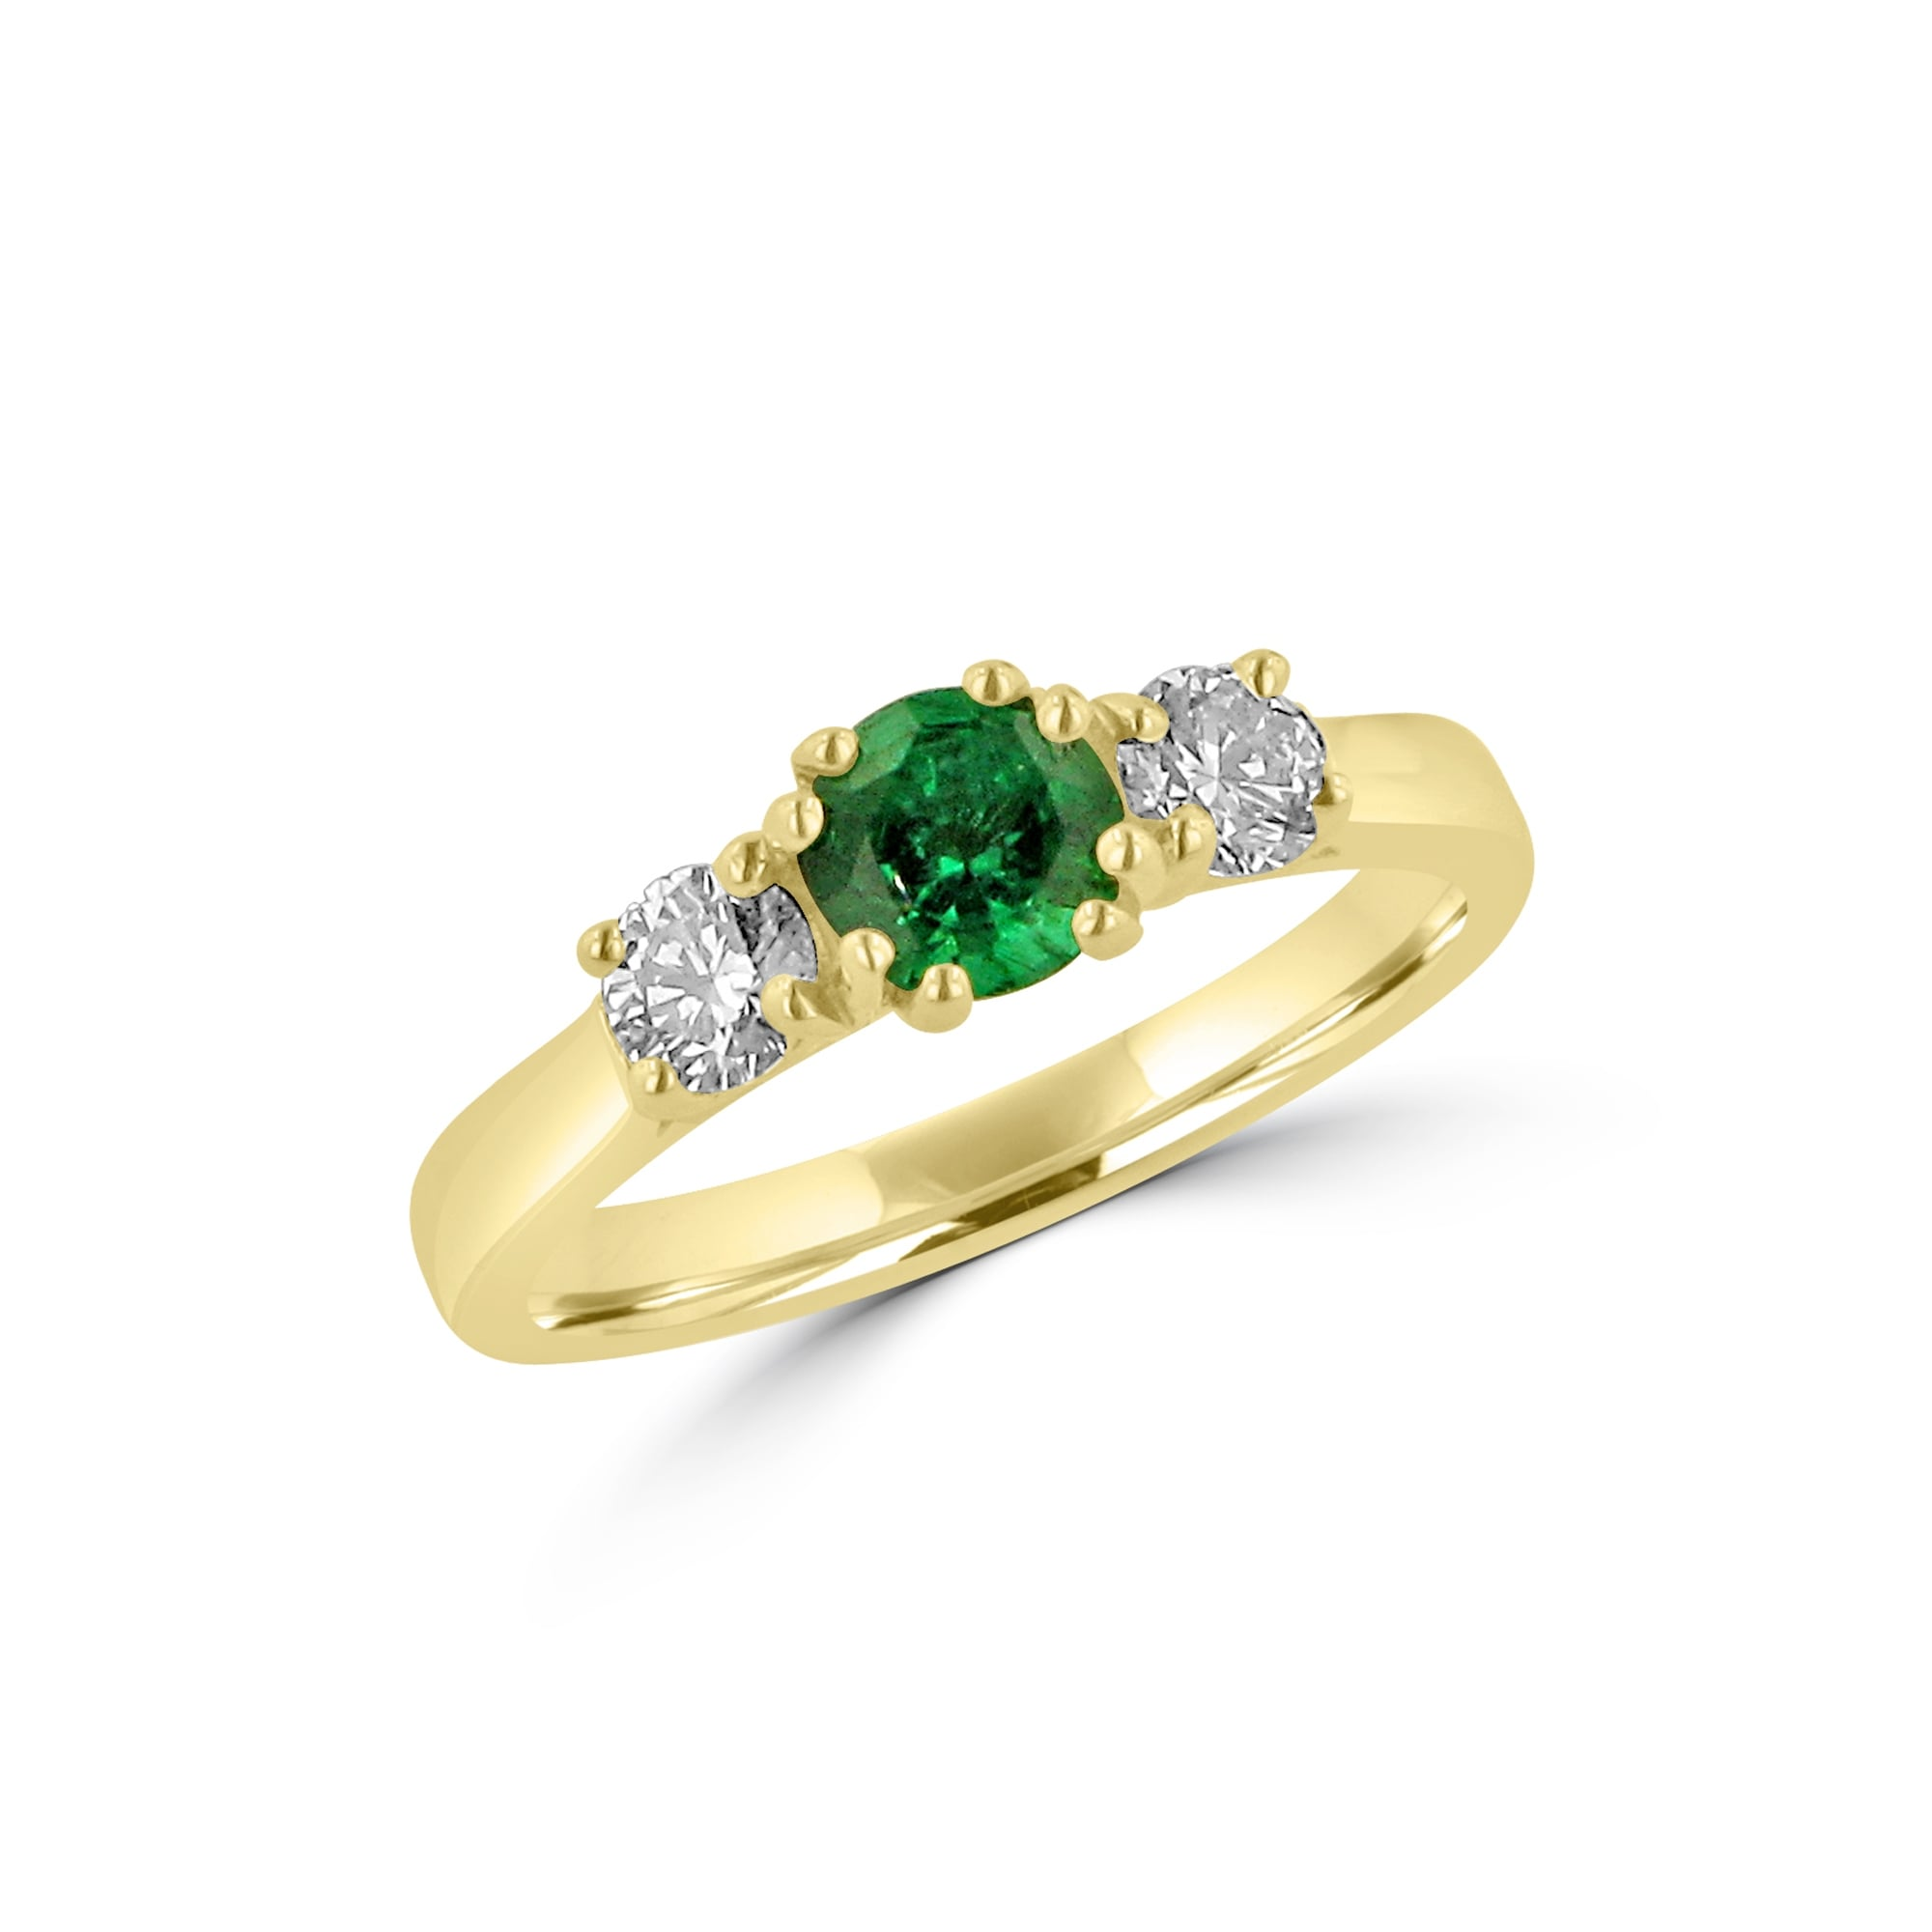 products in ring yellow low profile gold altana diamond foundry marie engagement bezel emerald set cut